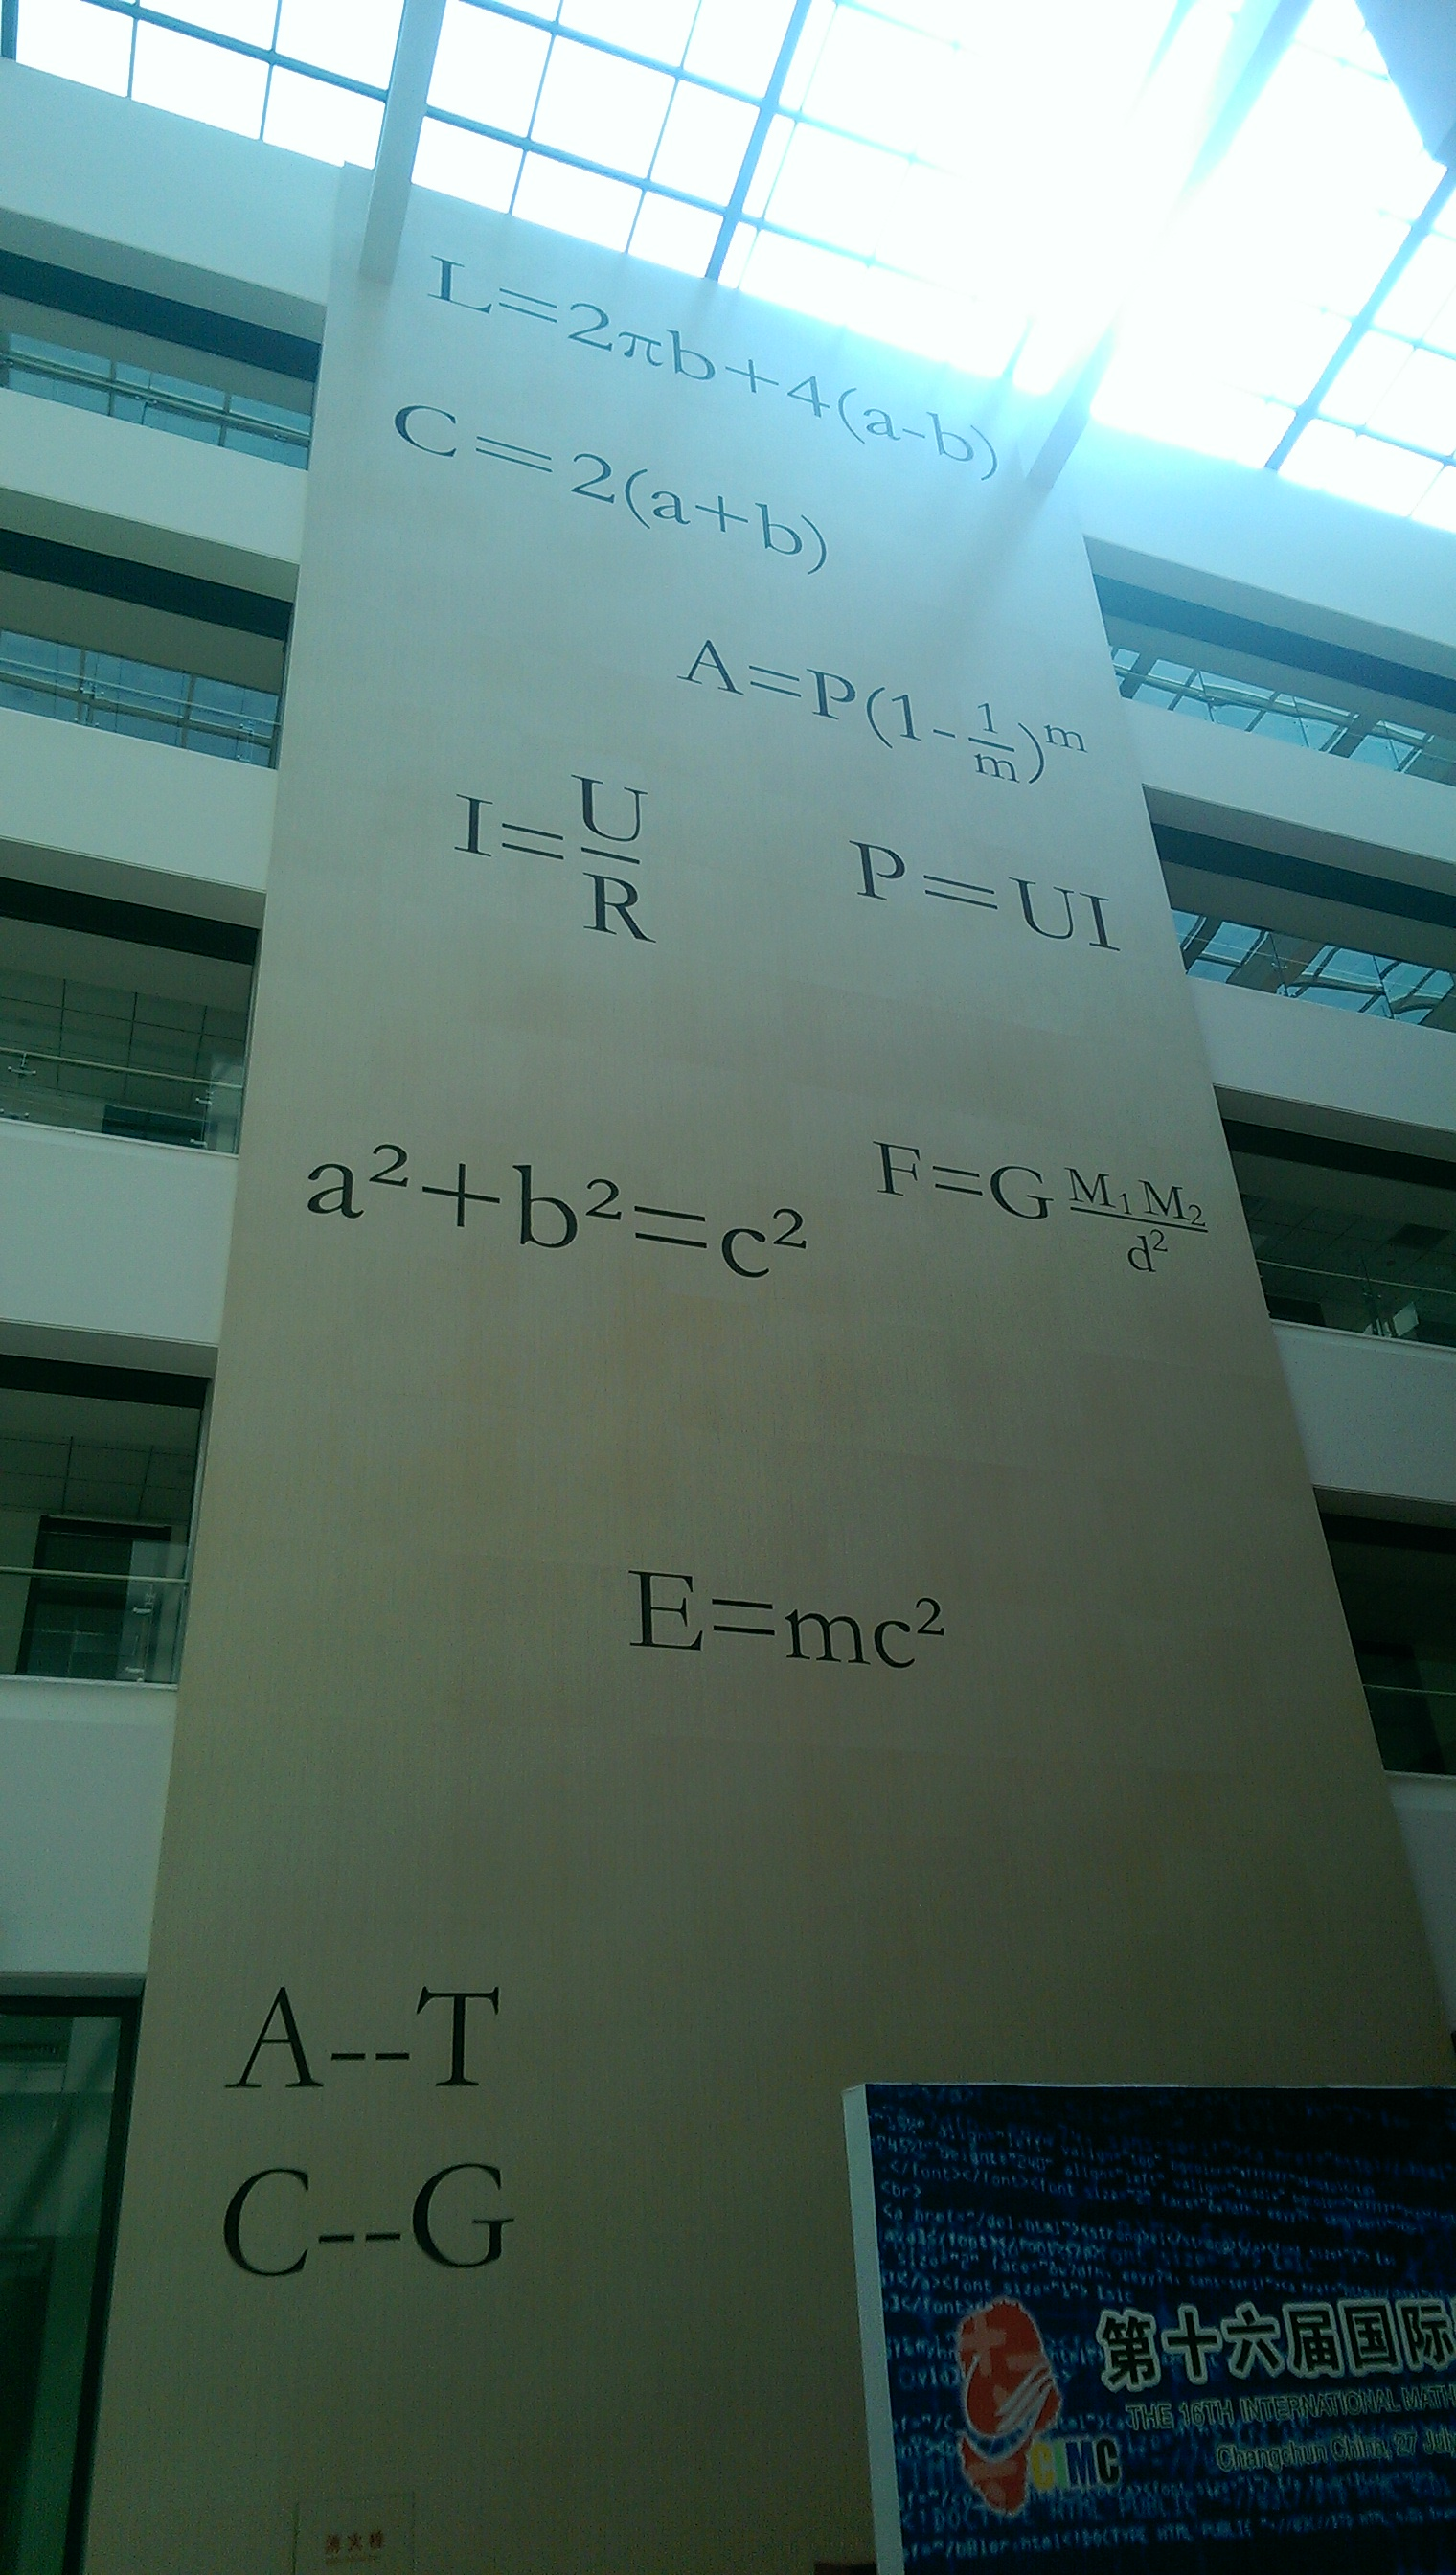 [A wall with equations and scientific laws on it]